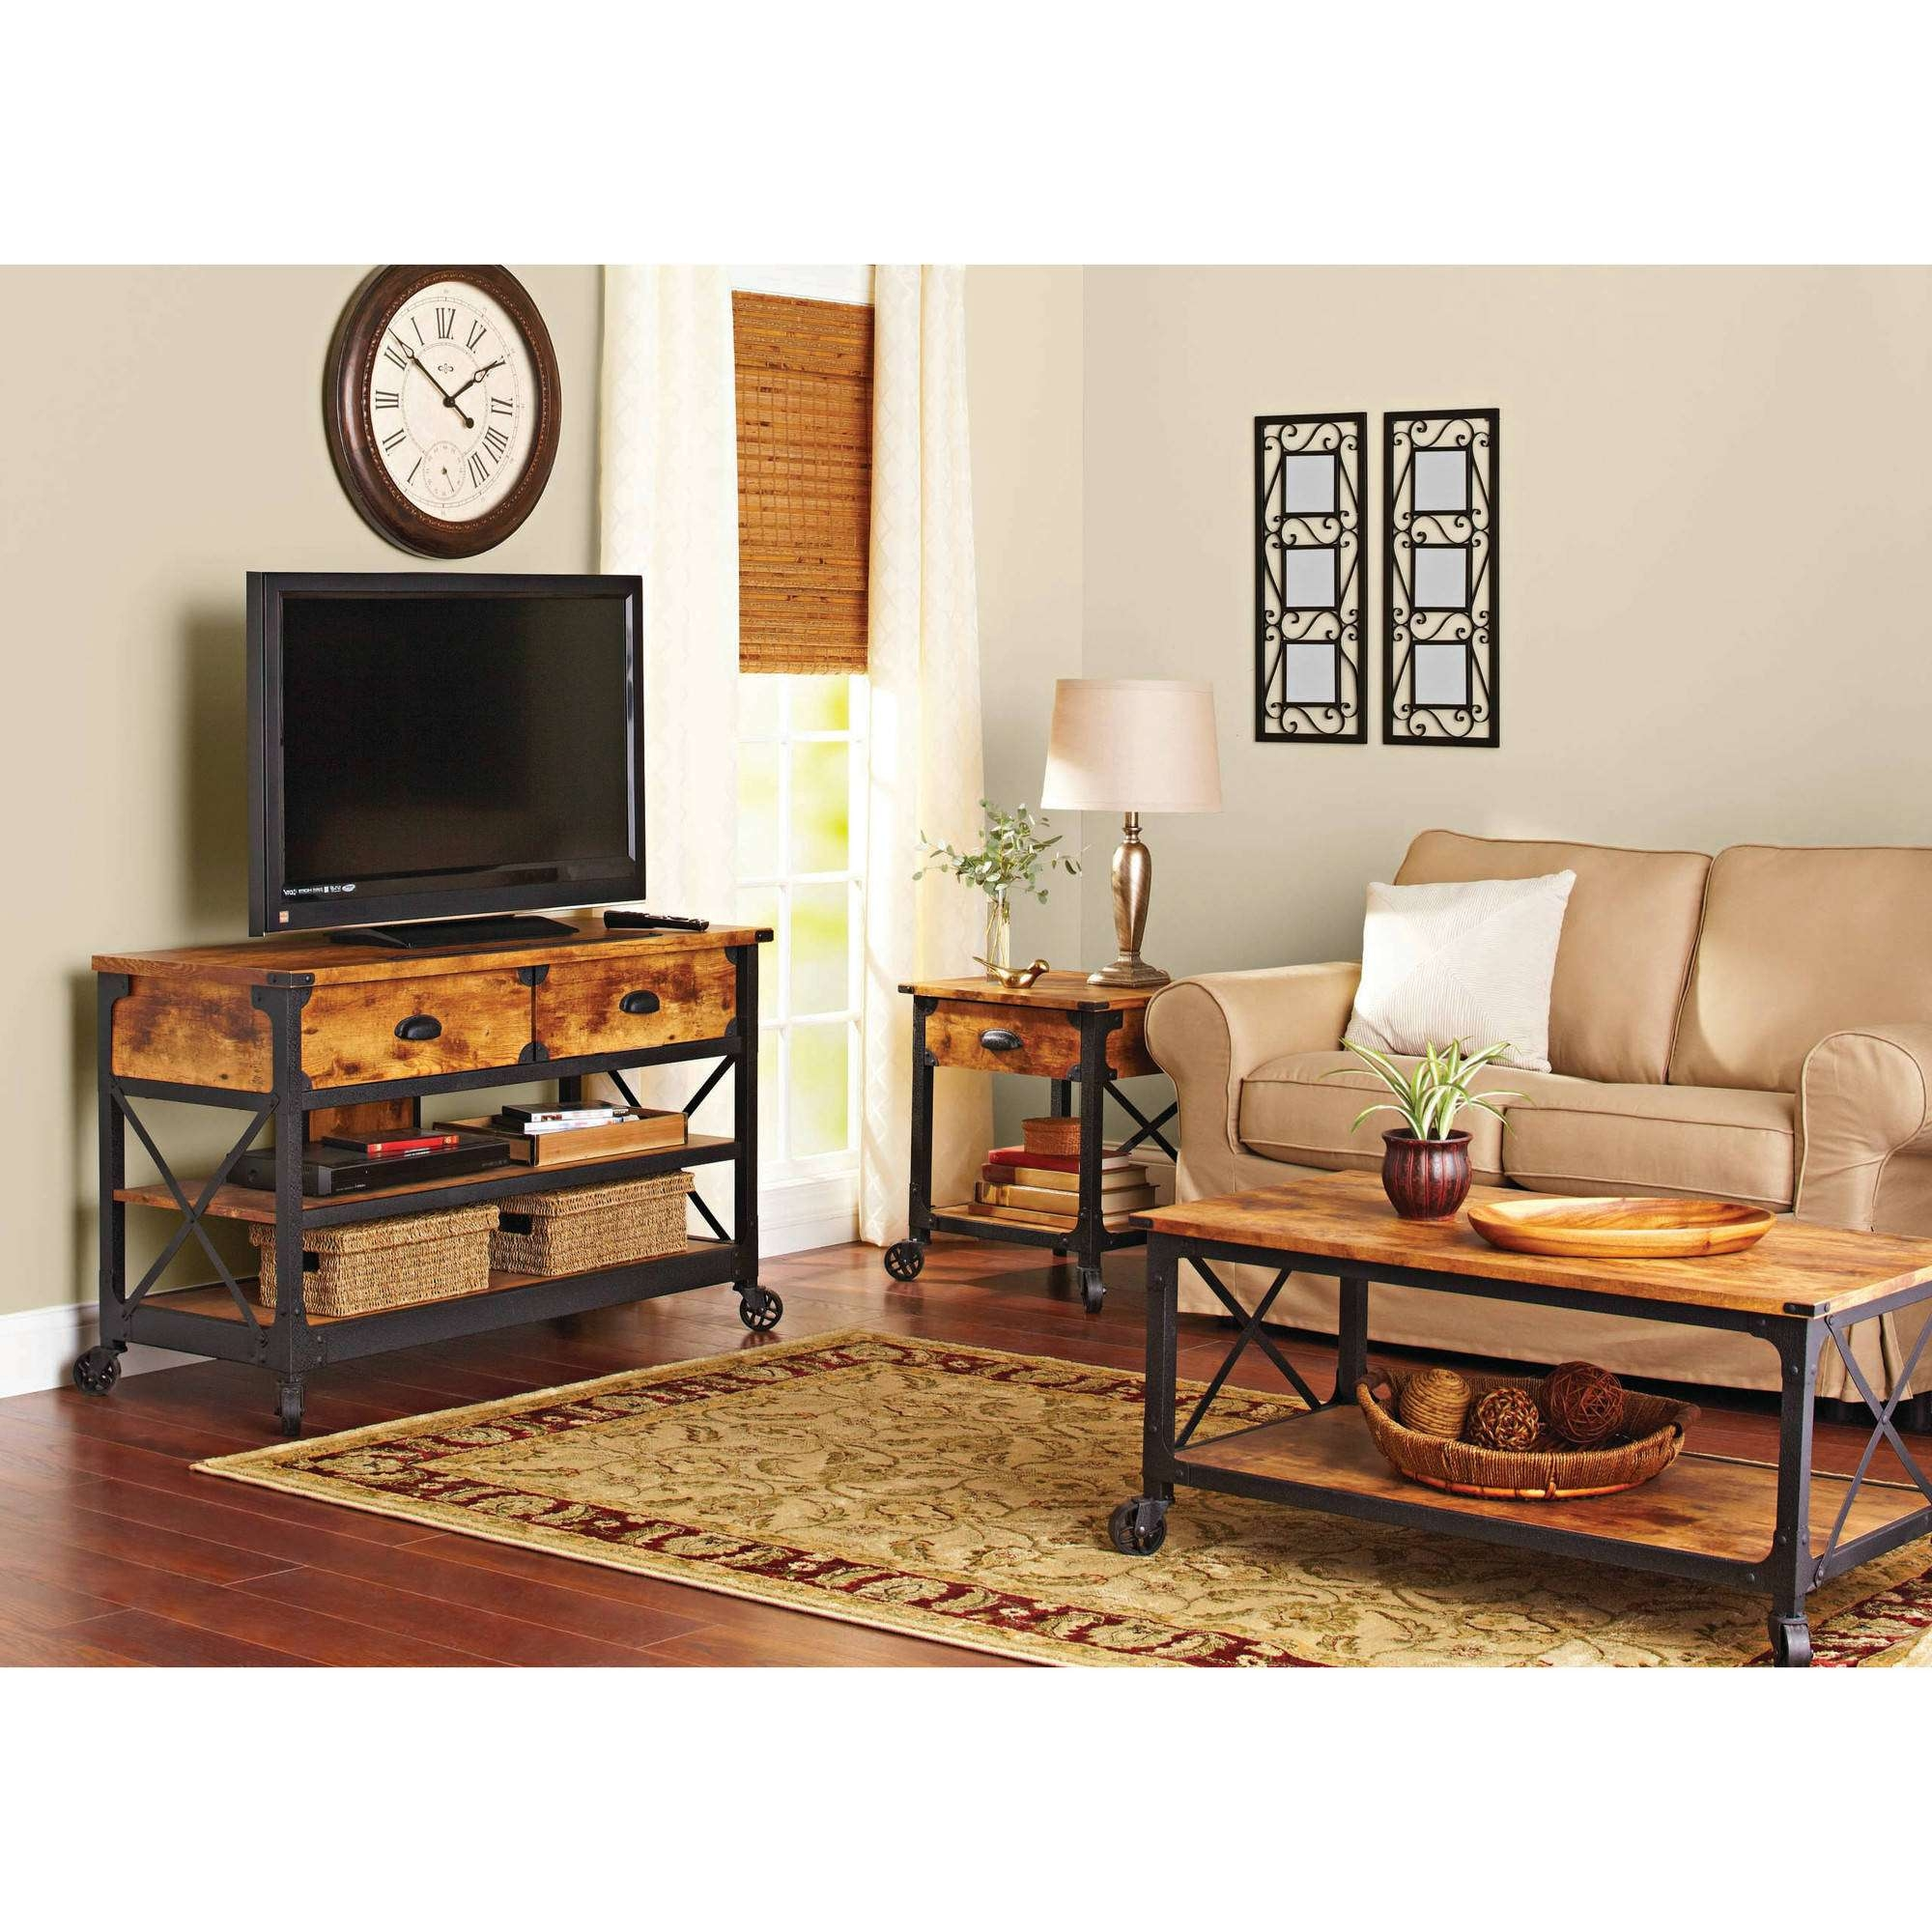 Table : Amazing Rustic Coffee Table And Tv Stands Better Homes And Intended For Coffee Tables And Tv Stands (View 18 of 20)